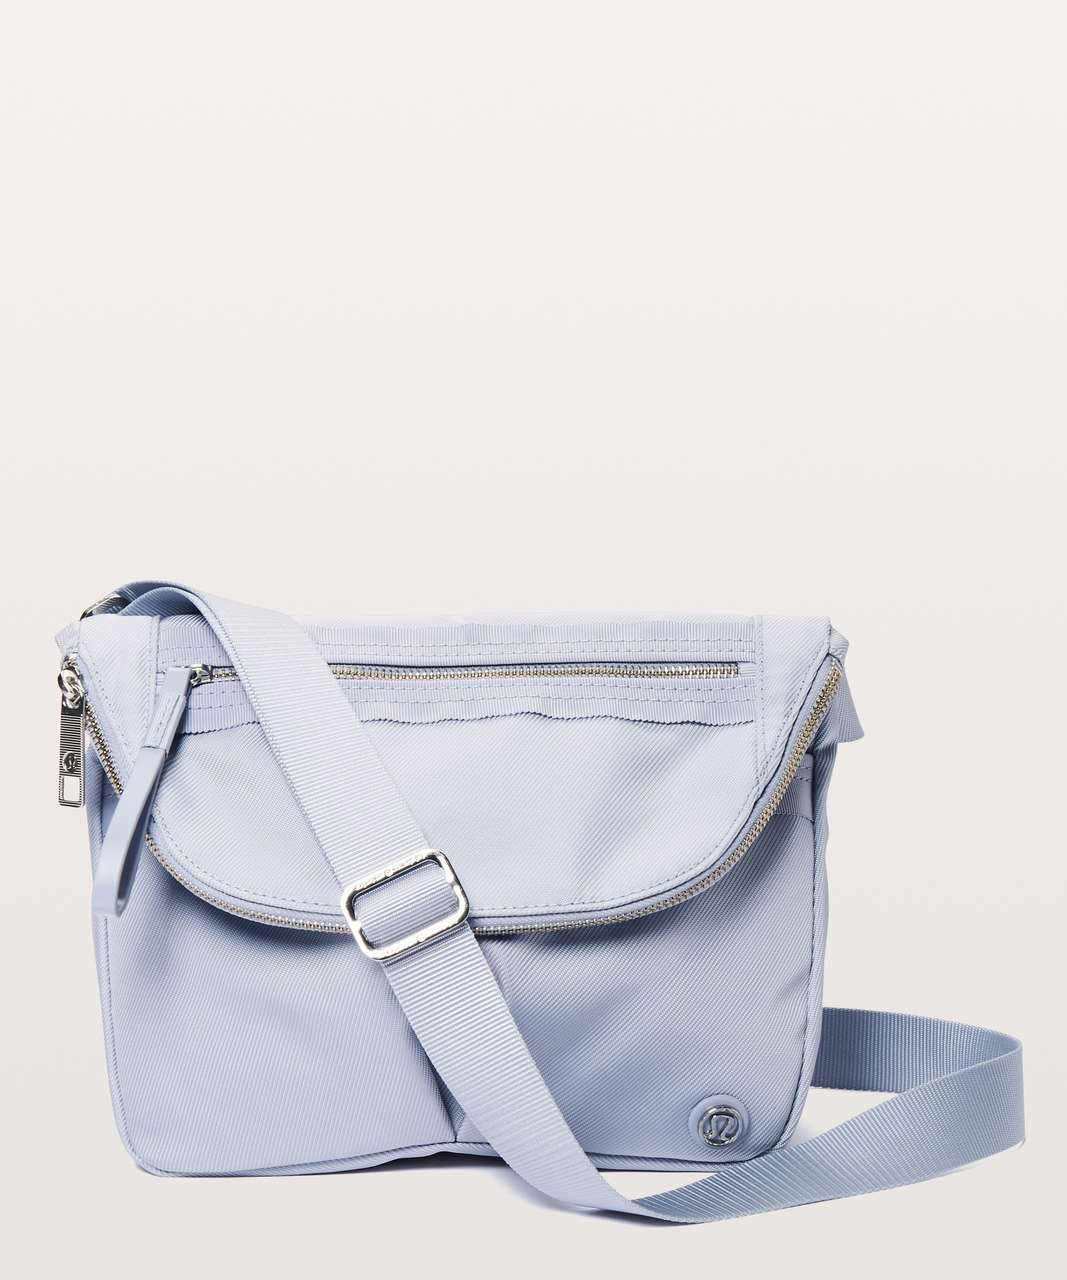 Lululemon Festival Bag II *5L - Berry Mist